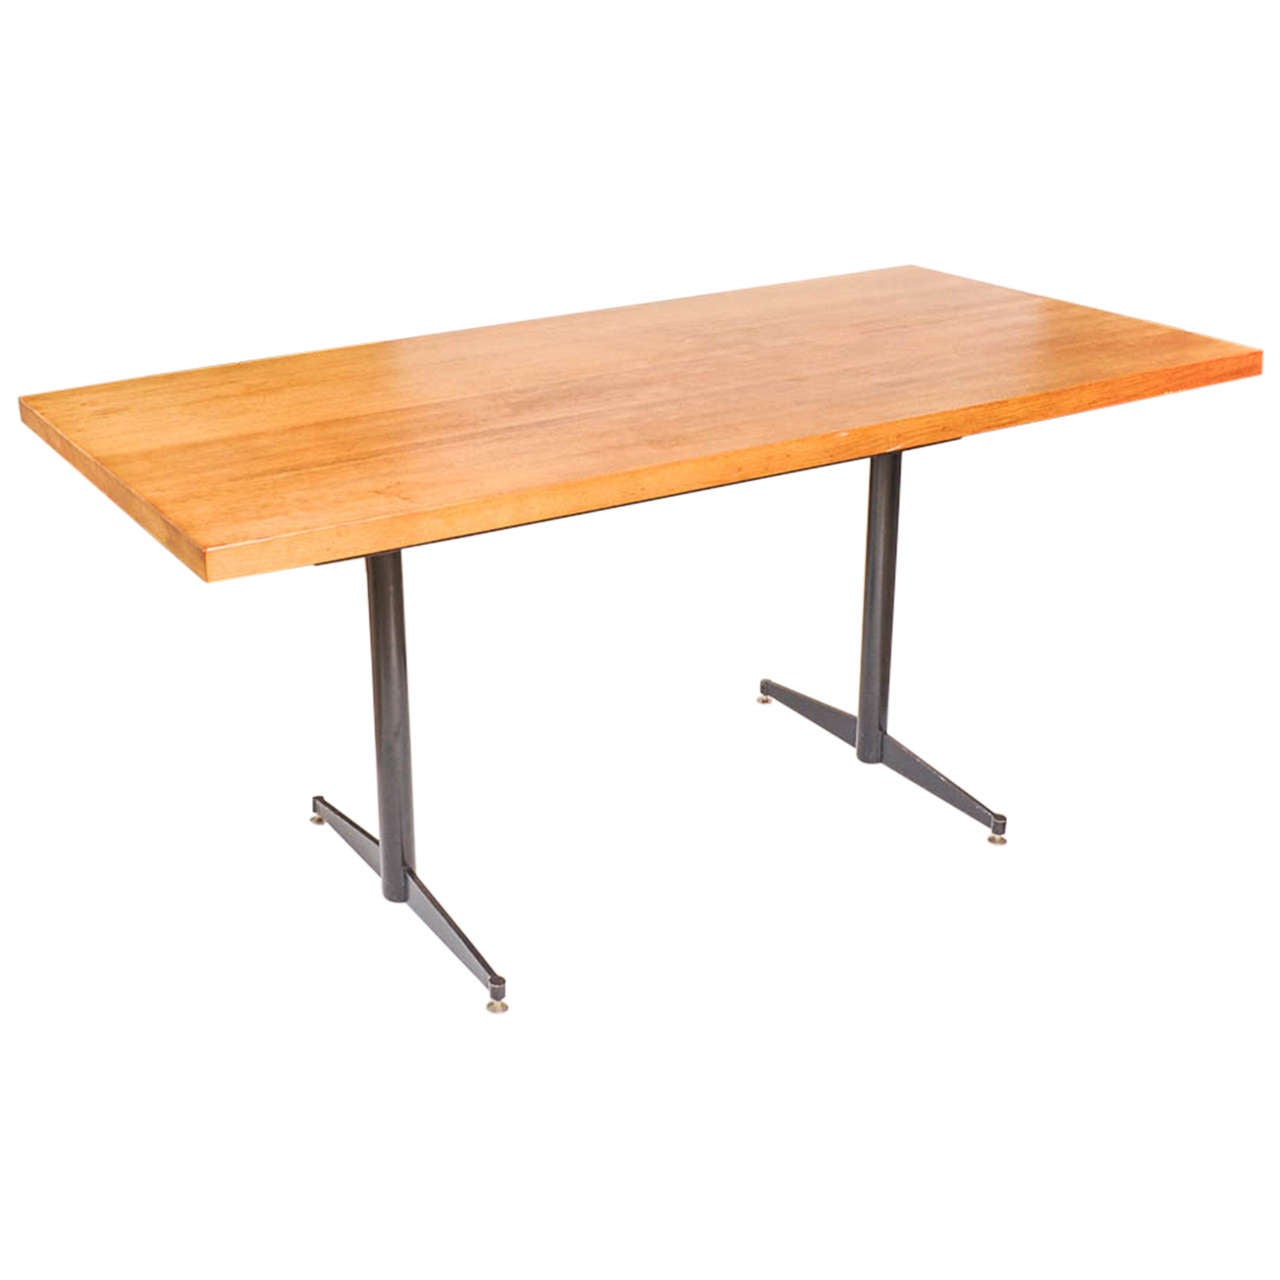 Eames Style Dining Table Made of Solid Oak and Black Steel  : X from www.1stdibs.com size 1280 x 1280 jpeg 40kB